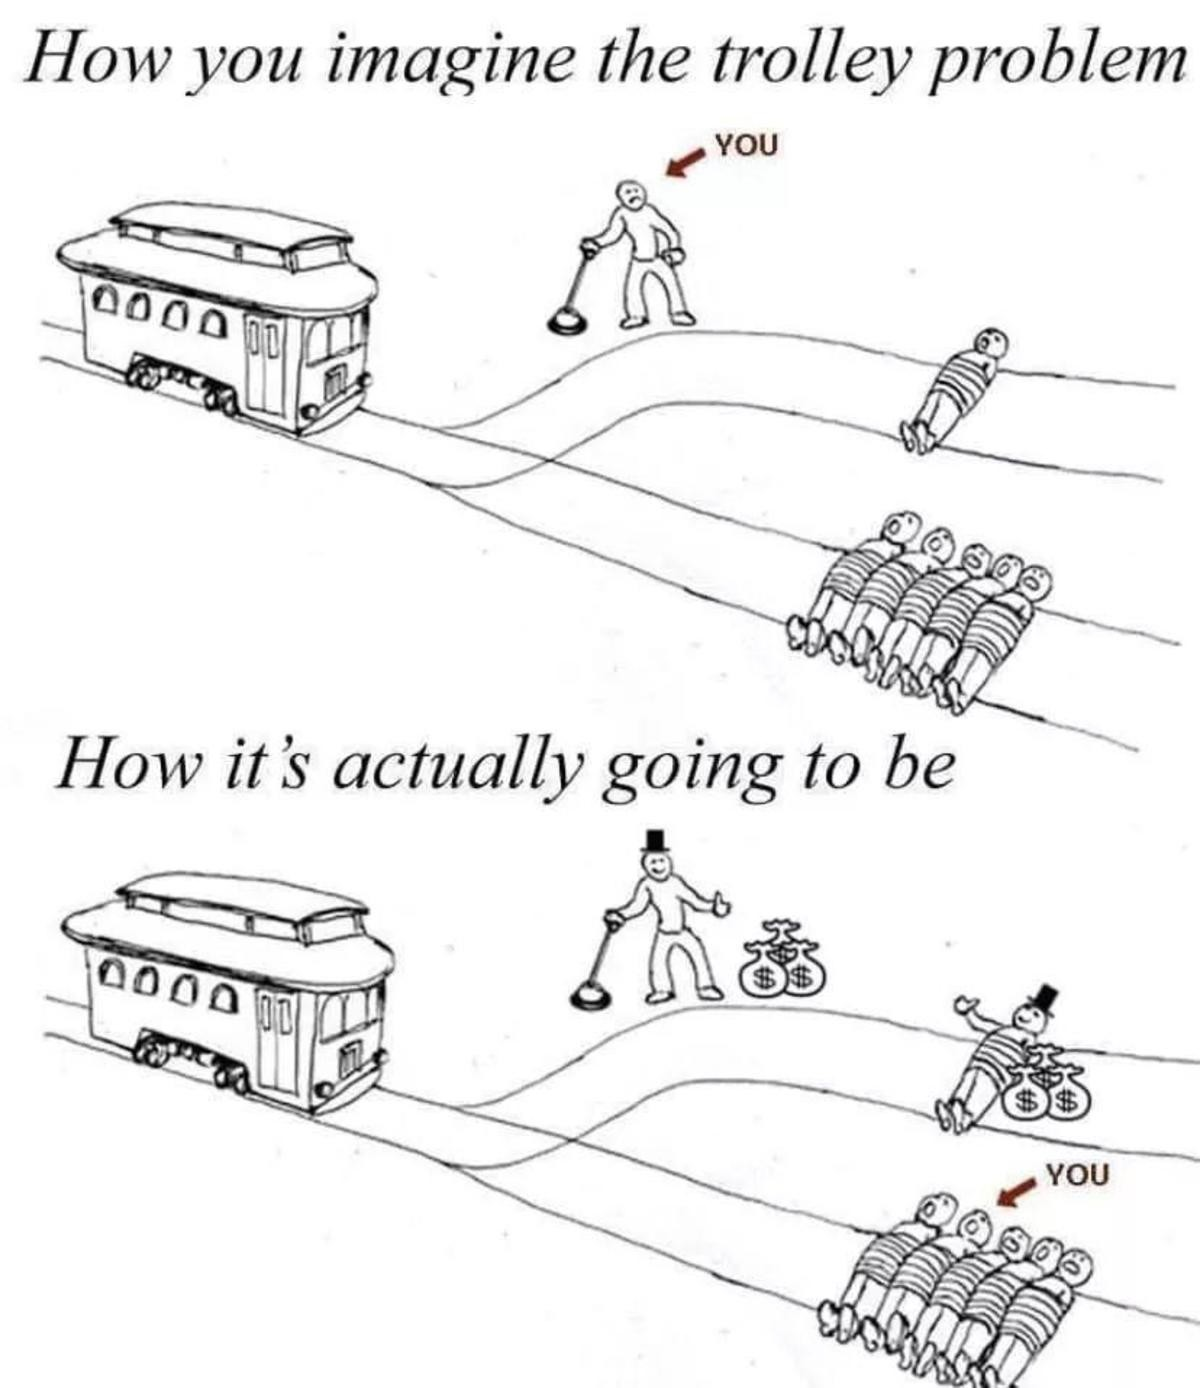 The trolley problem reimagined. .. the actual problem of the trolley problem, is that there is no context once you give it context, it is no longer the trolley problem